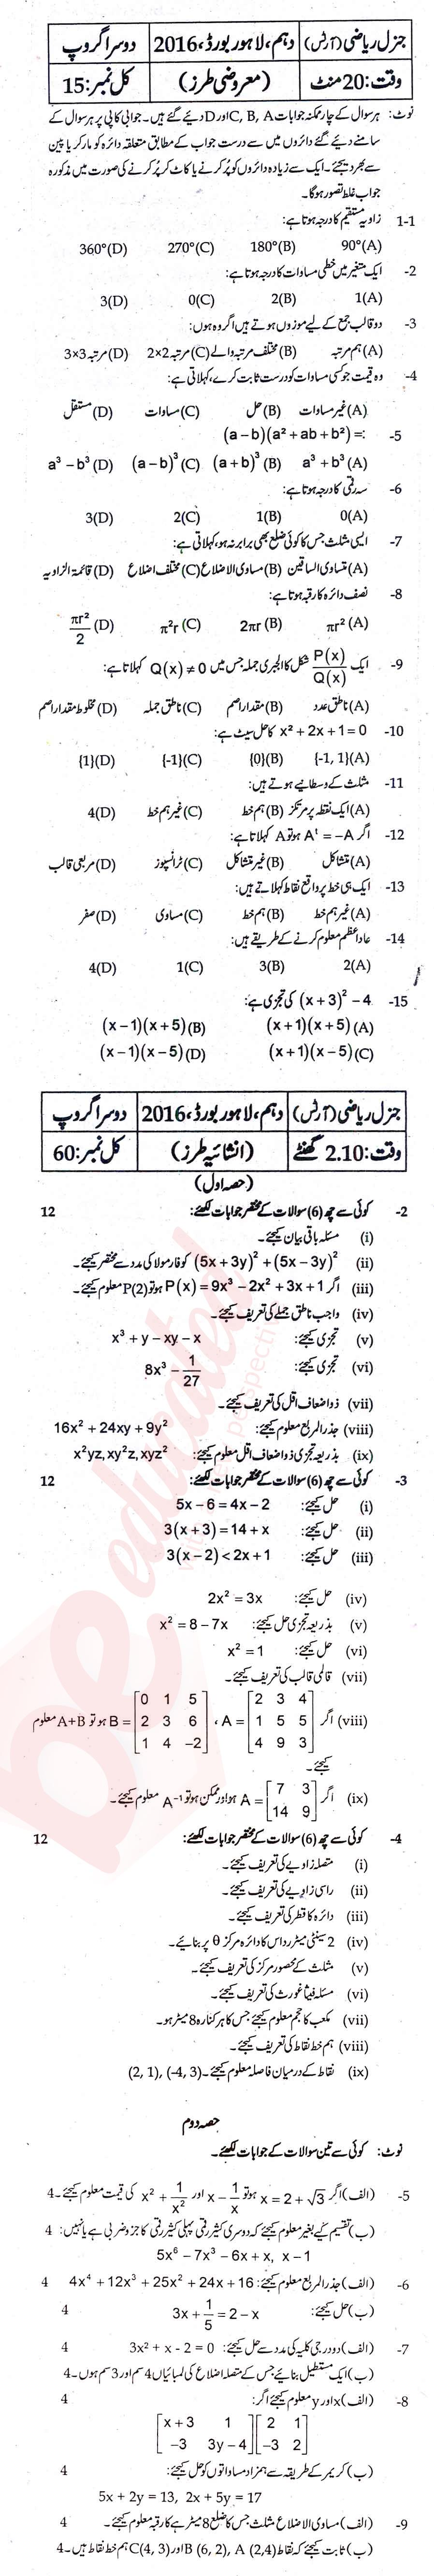 BISE Lahore Board Past Papers 2017-2018 biselahore.com